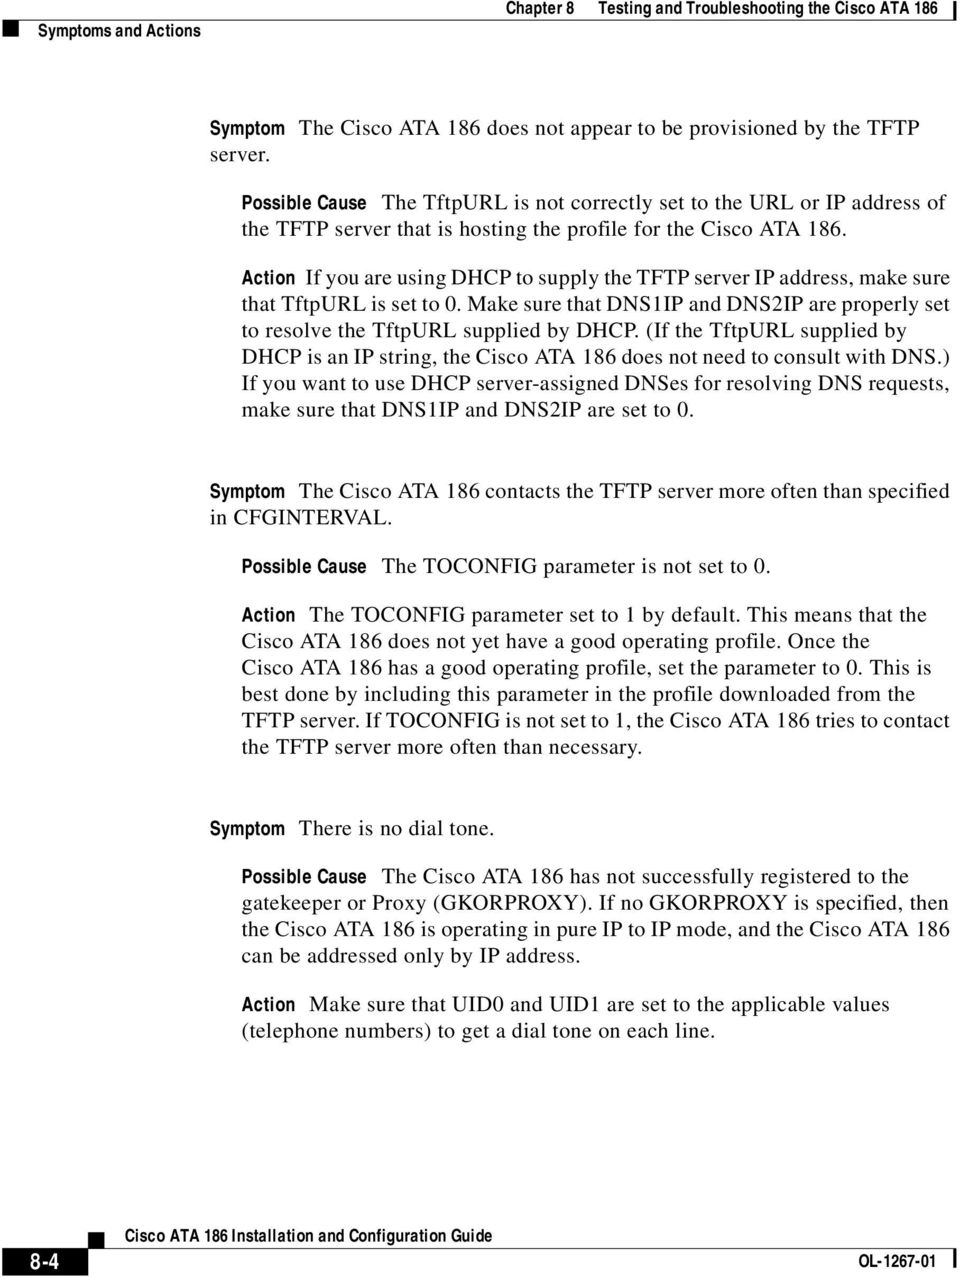 If you are using DHCP to supply the TFTP server IP address, make sure that TftpURL is set to 0. Make sure that DNS1IP and DNS2IP are properly set to resolve the TftpURL supplied by DHCP.